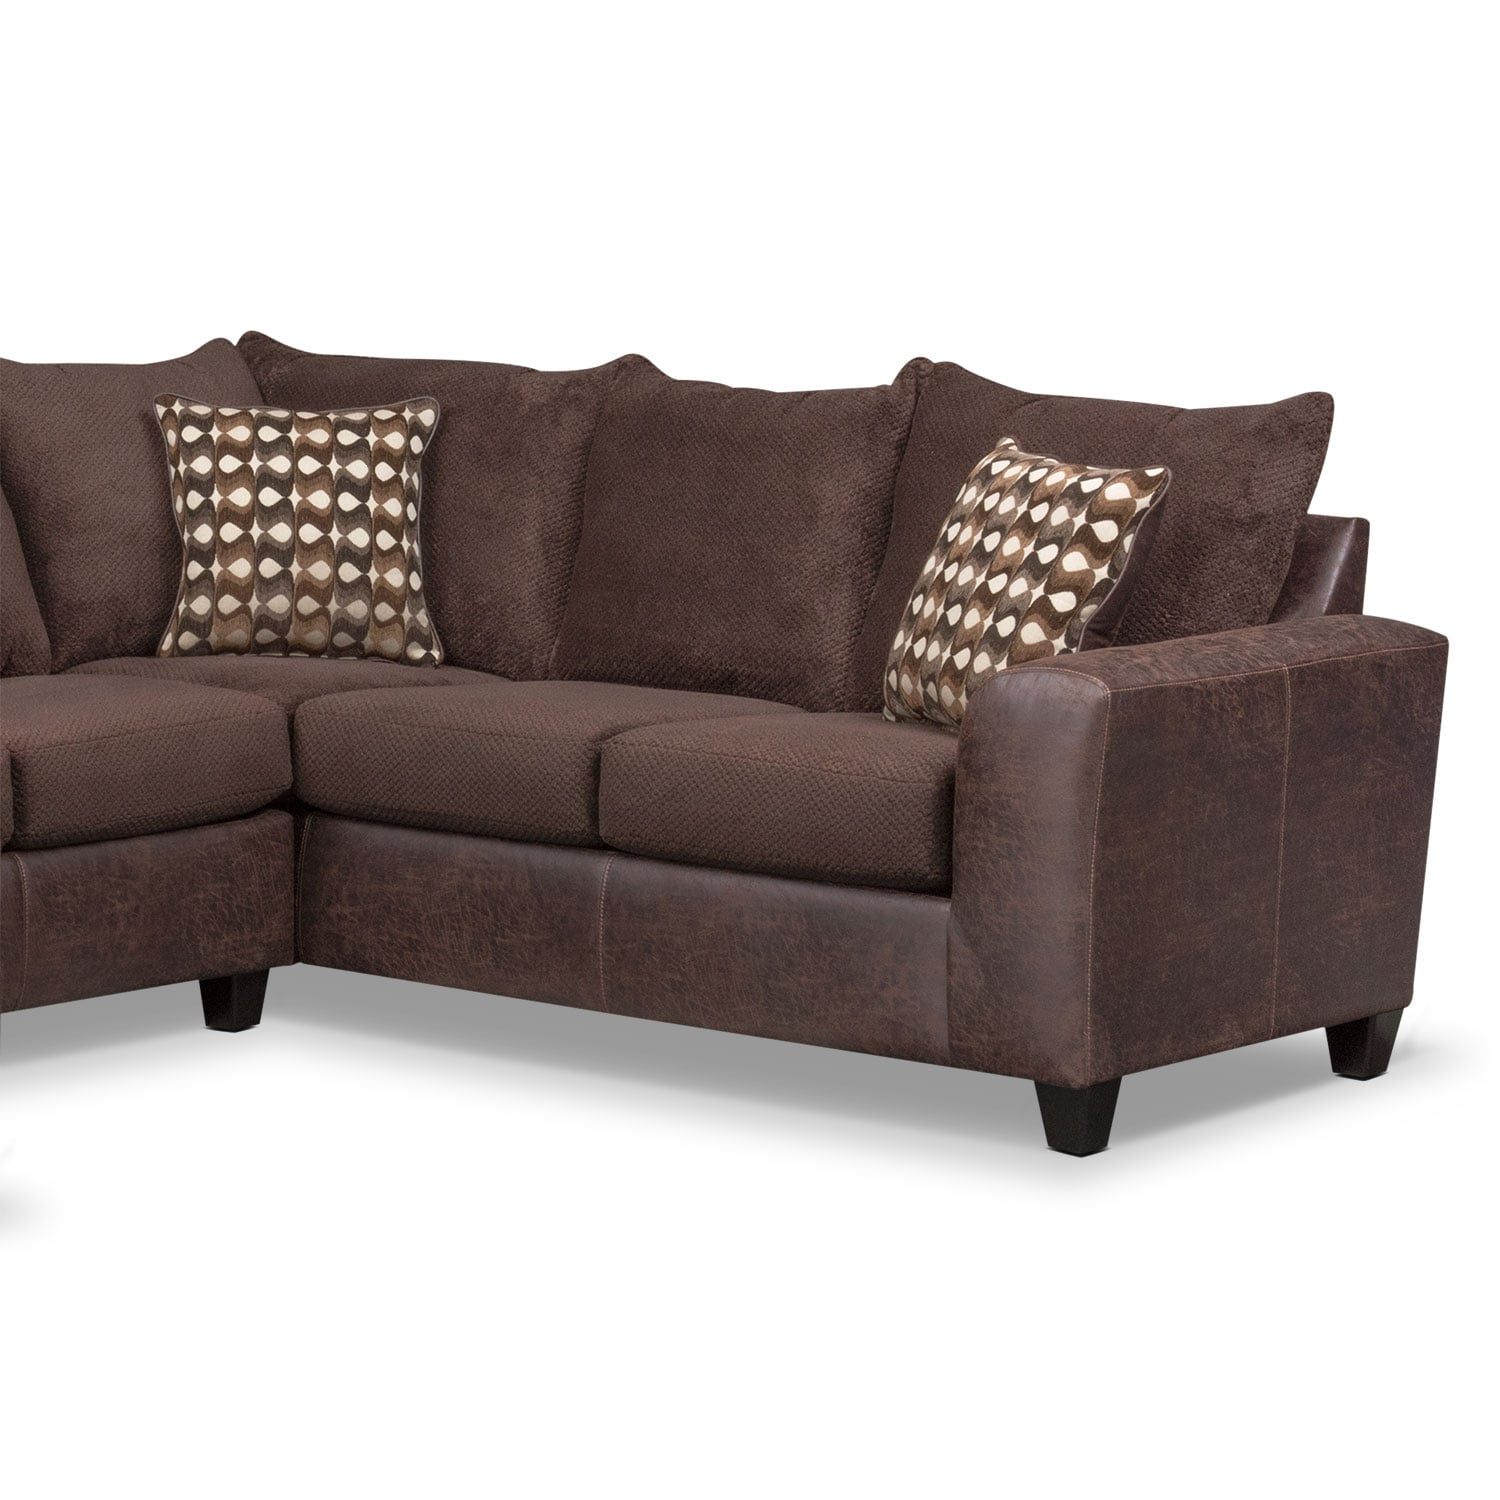 Brando 3 piece sectional with modular chaise chocolate for American signature furniture commercial chaise